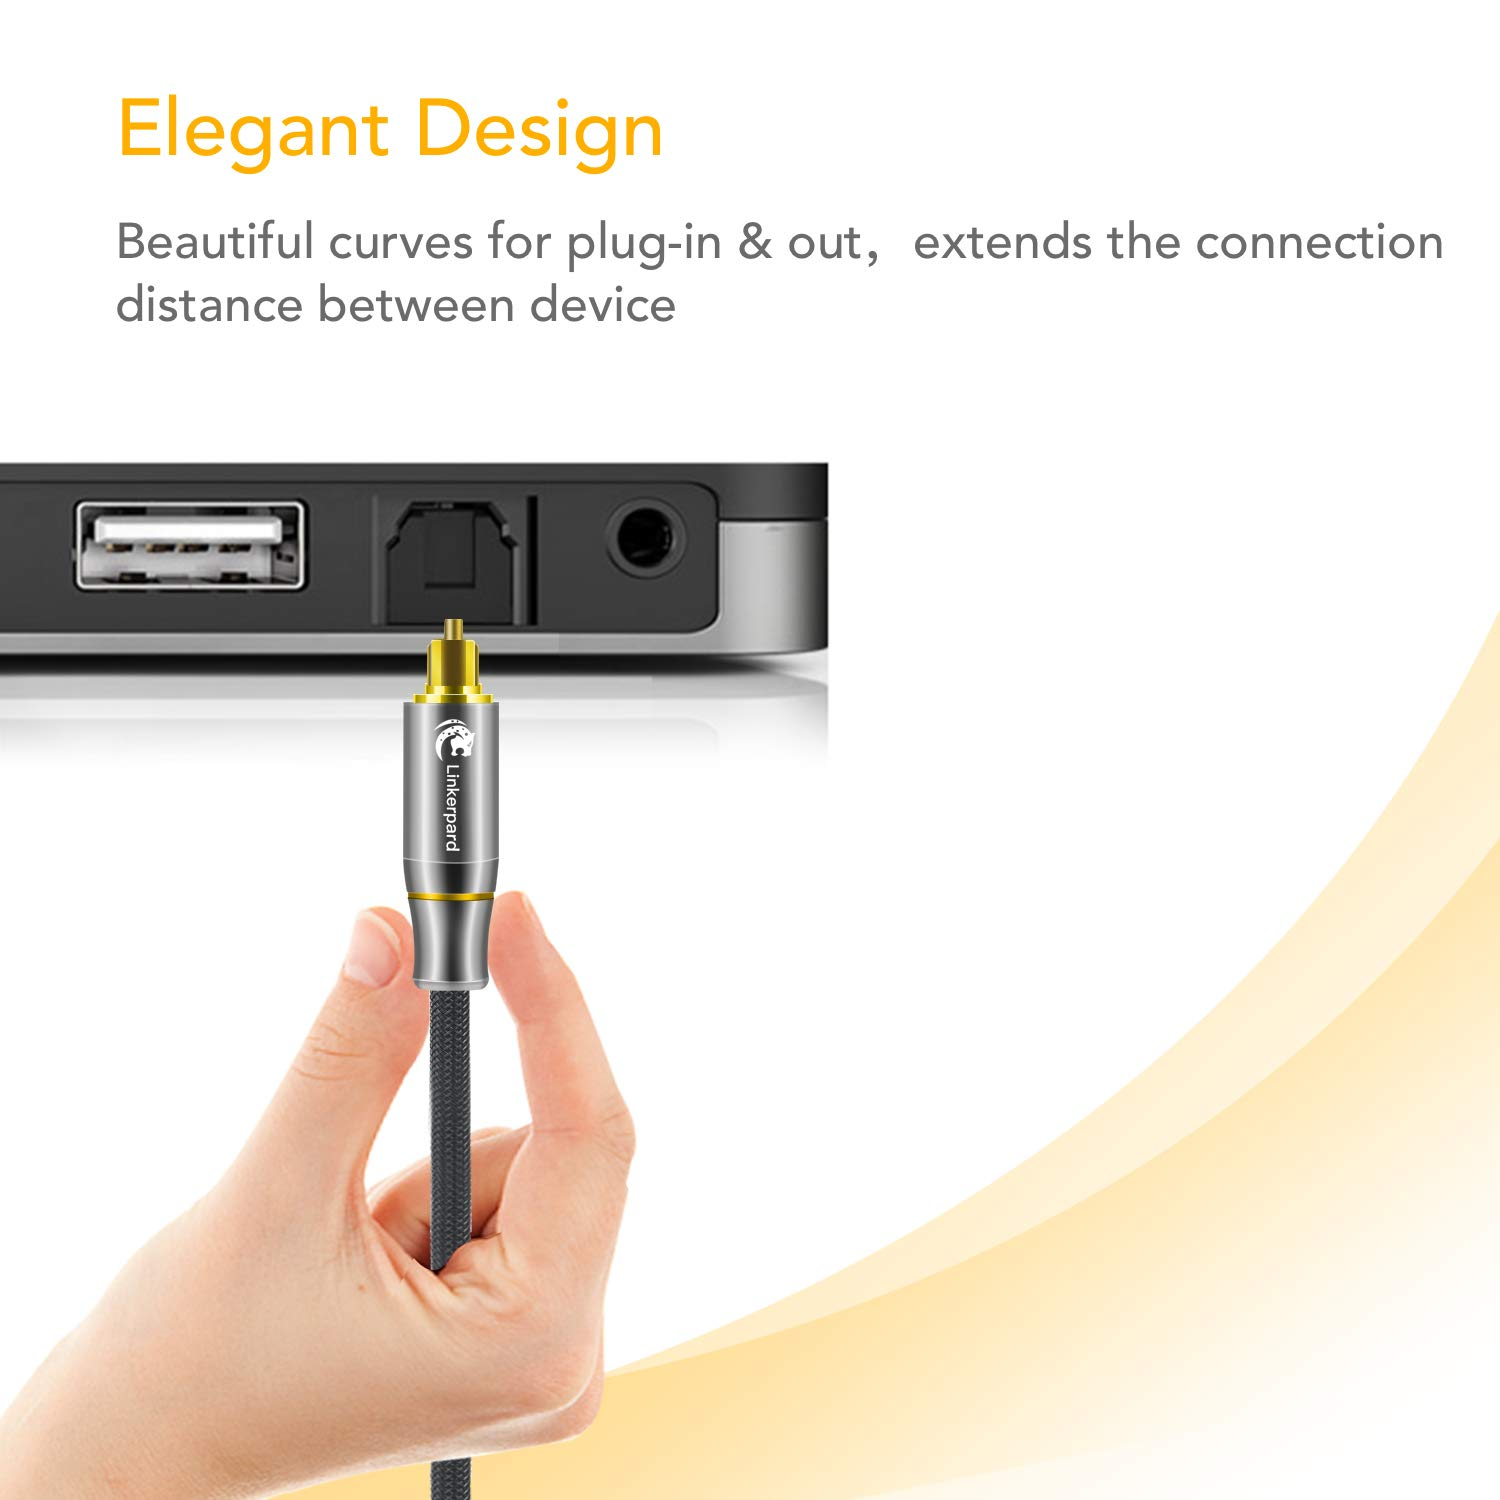 2 Meter//6.6 feet Linkerpard SPDIF Digital Optical Cable Toslink Audio Male to Male Compatible with Amplifier TV Soundbar Xbox and Home Theater System